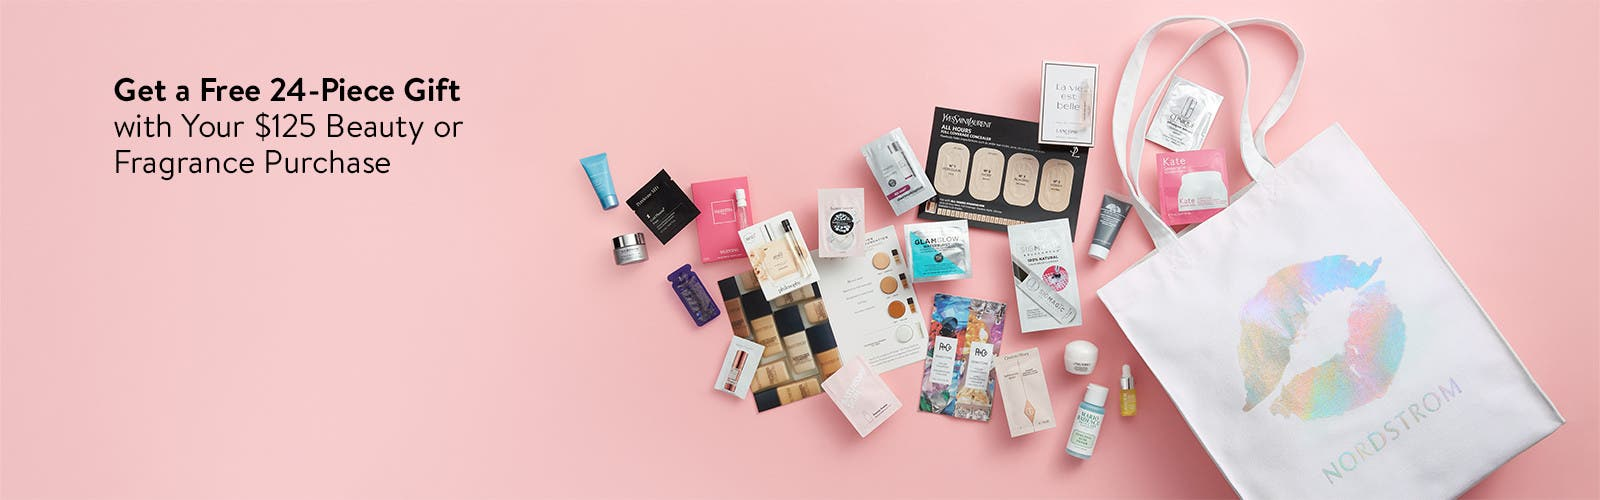 Free 24-piece gift with your $125 beauty or fragrance purchase.